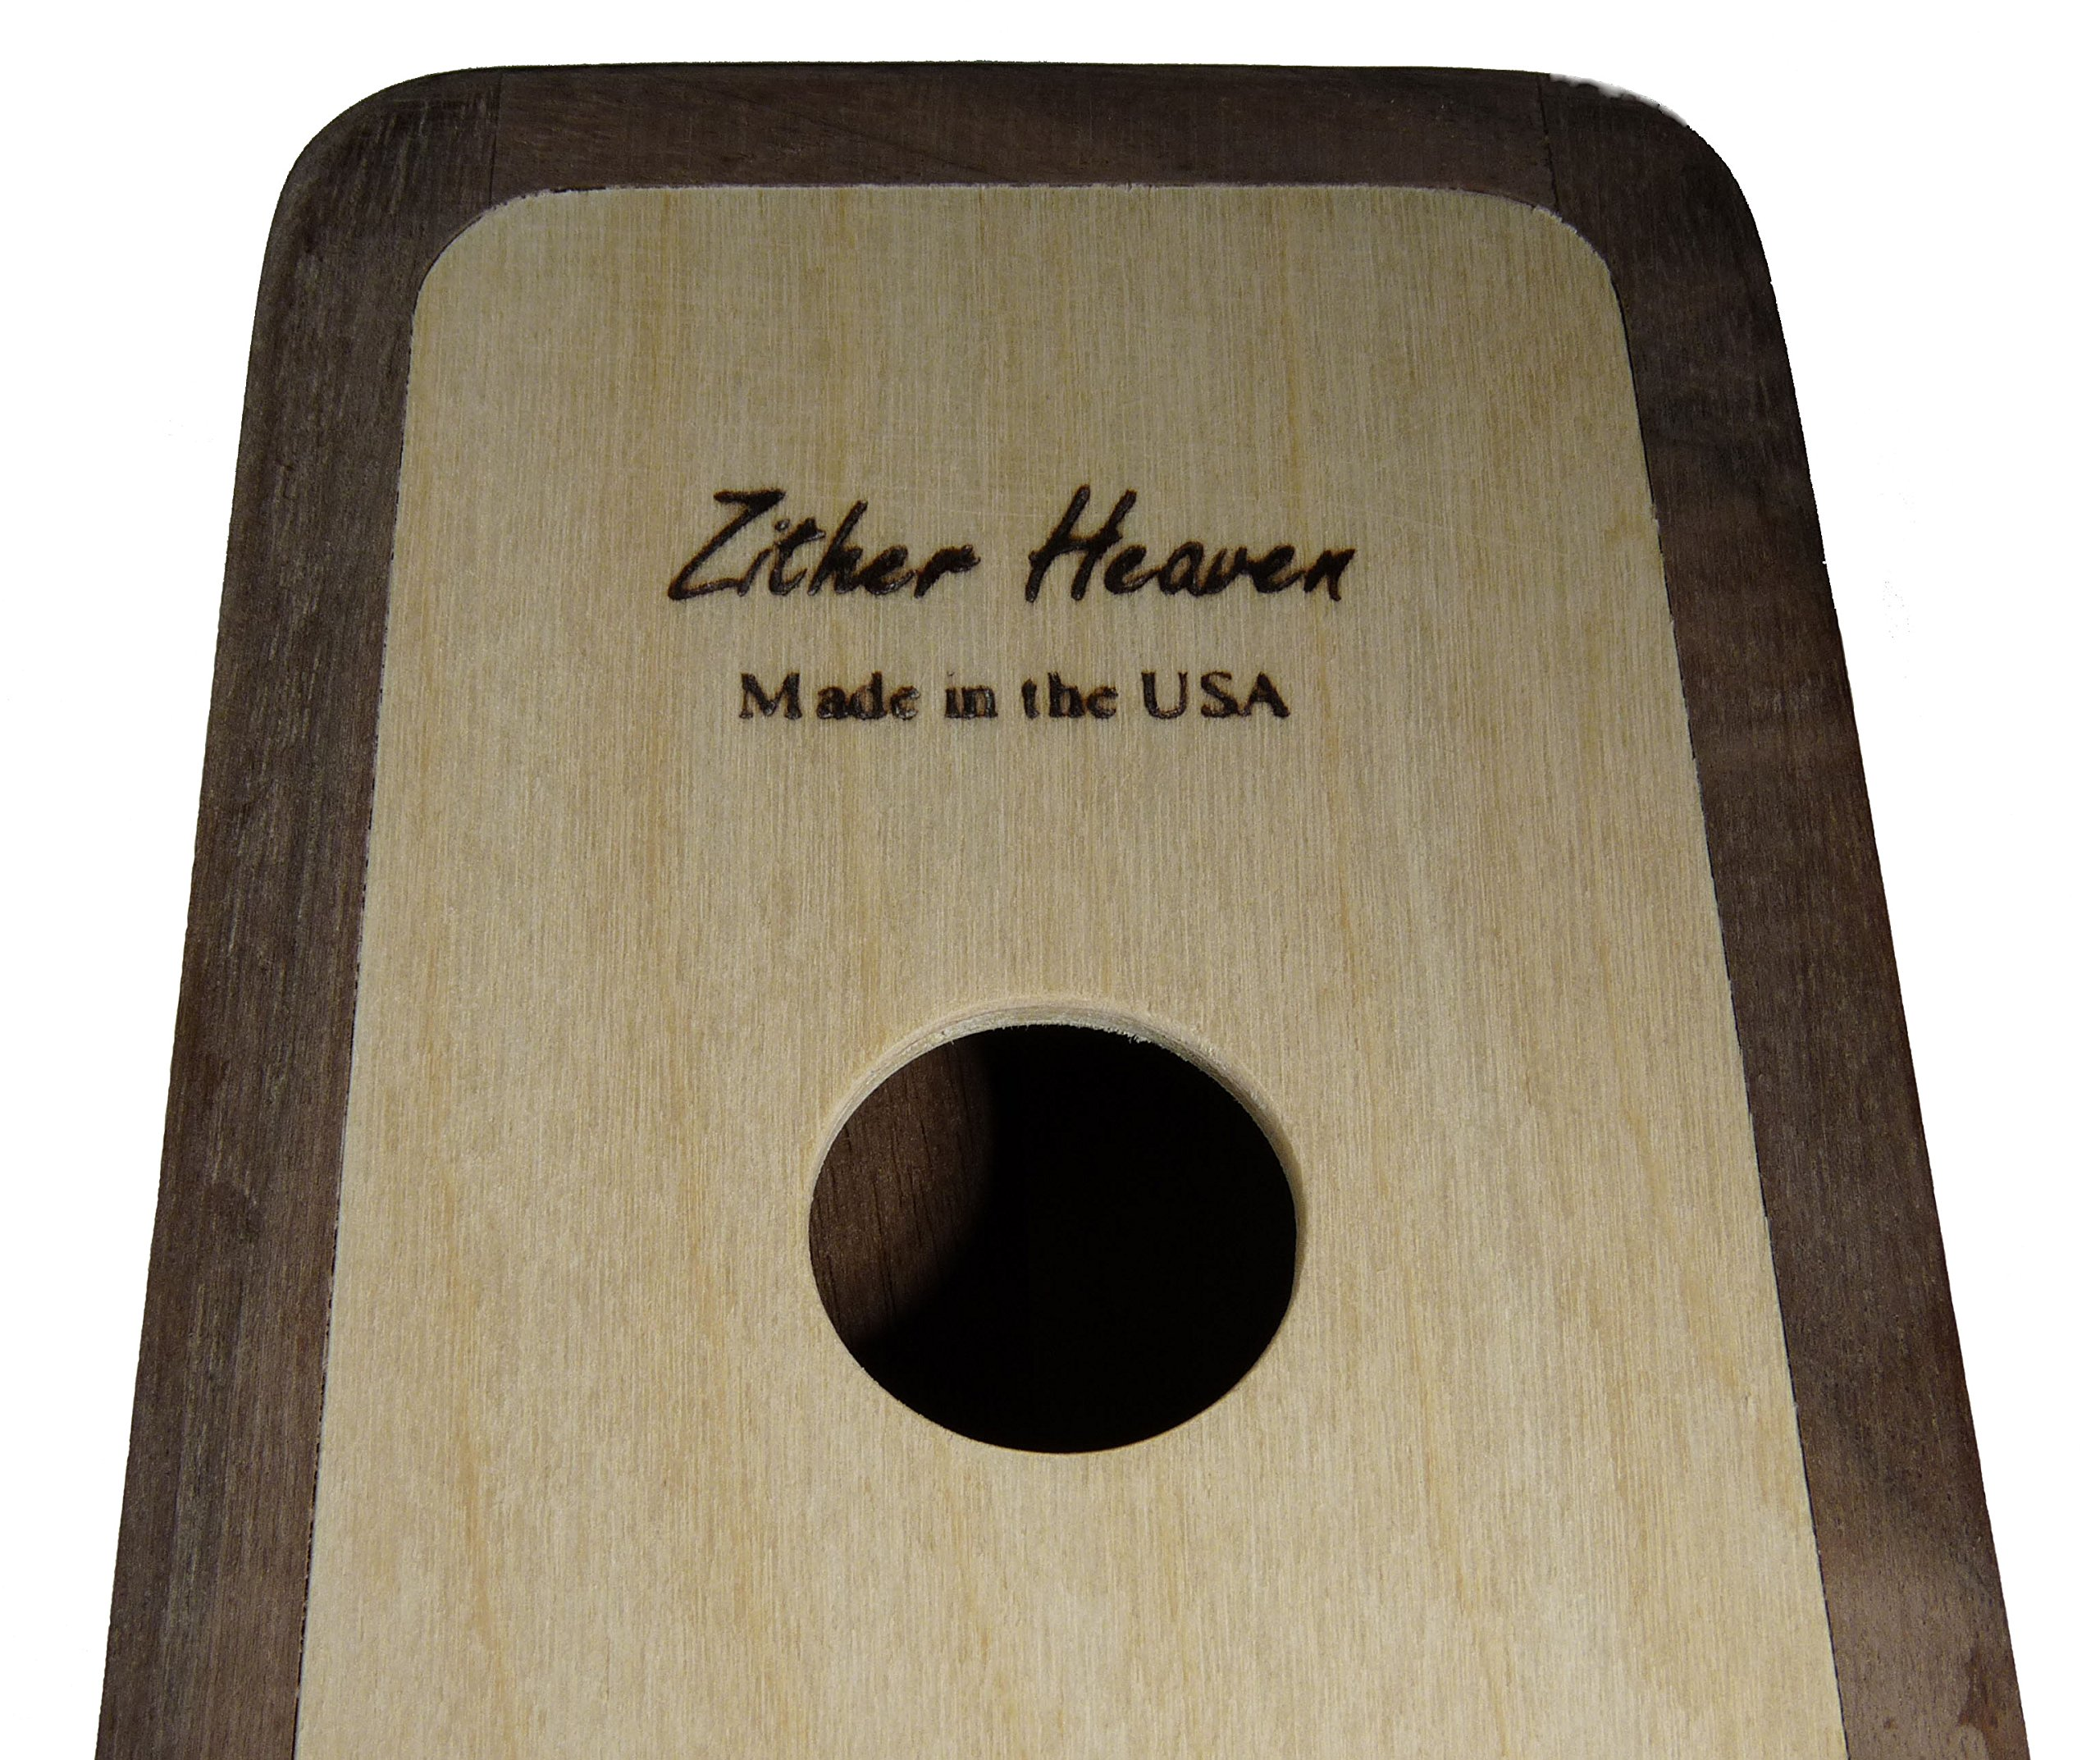 Zither Heaven Artisan Pentatonic 8 Note Black Walnut w/Cherry top Thumb Piano made in the USA by Zither Heaven (Image #6)